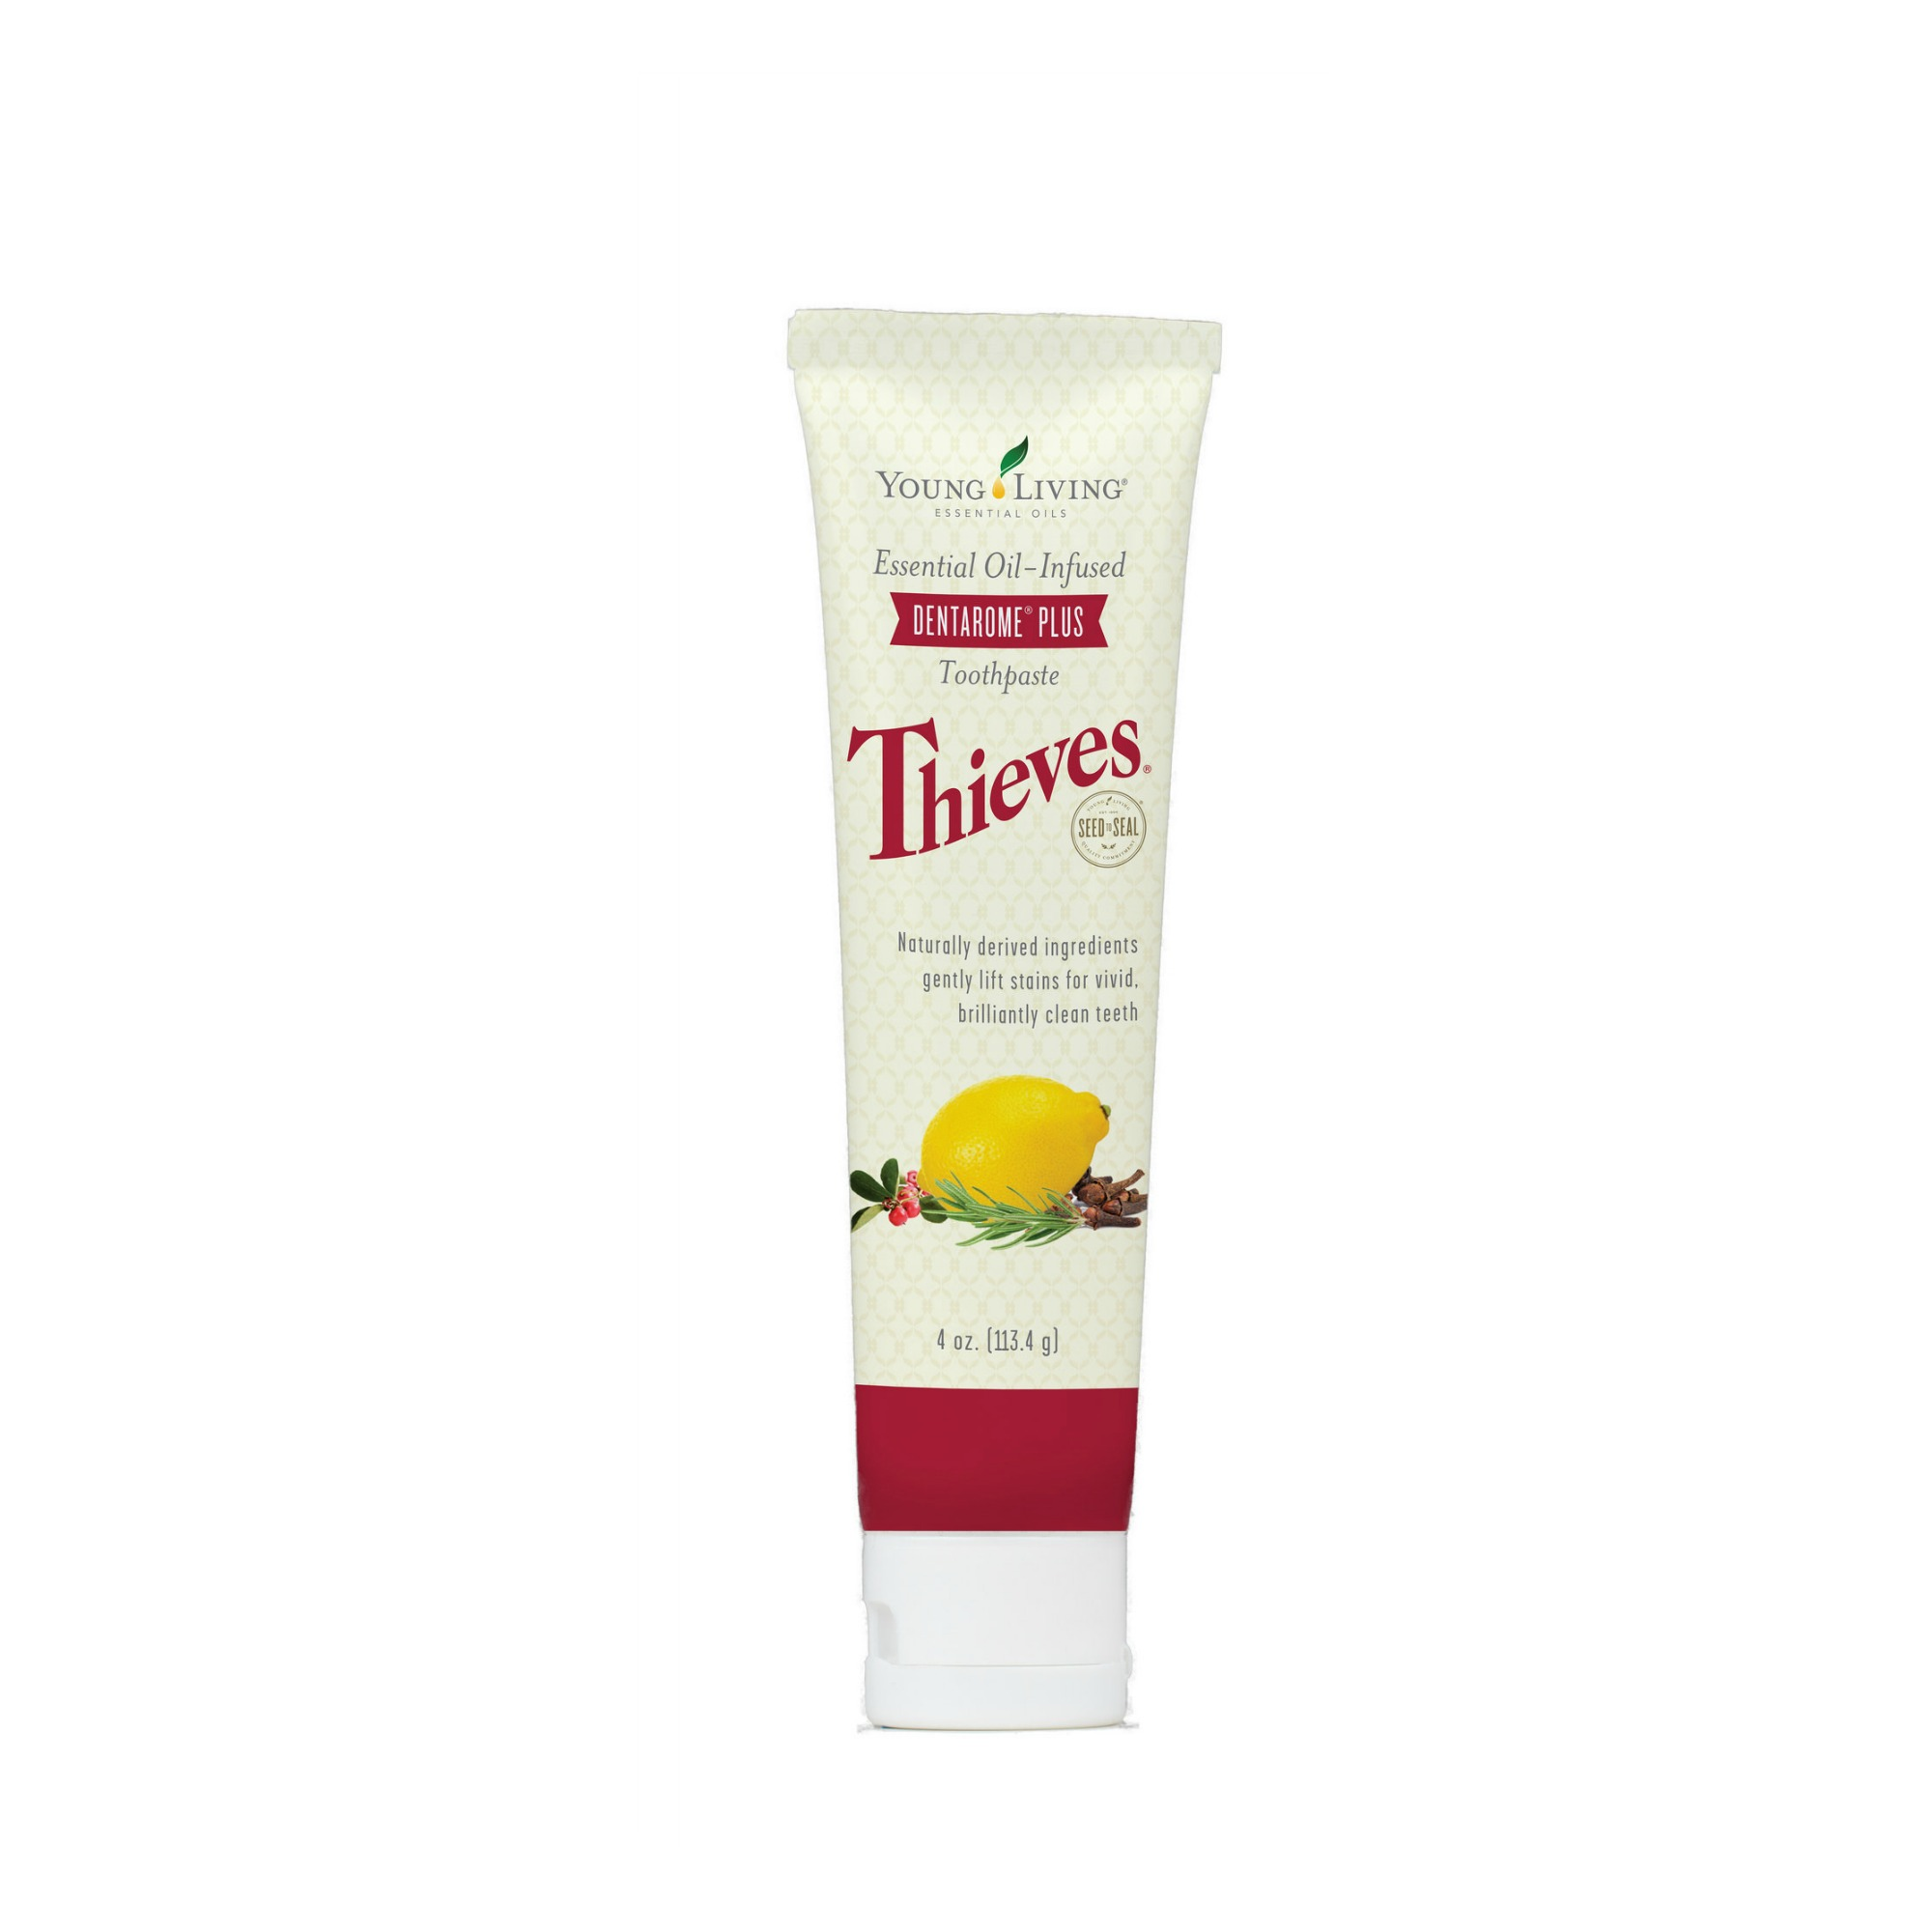 THIEVES DENTAROME PLUS TOOTHPASTE    Naturally derived ingredients such as baking soda and Thieves essential oil blend gently lift stains for brilliantly clean teeth. The minty combination of Peppermint and Wintergreen essential oils adds to the refreshing flavor.   Click here   to learn more about this product.